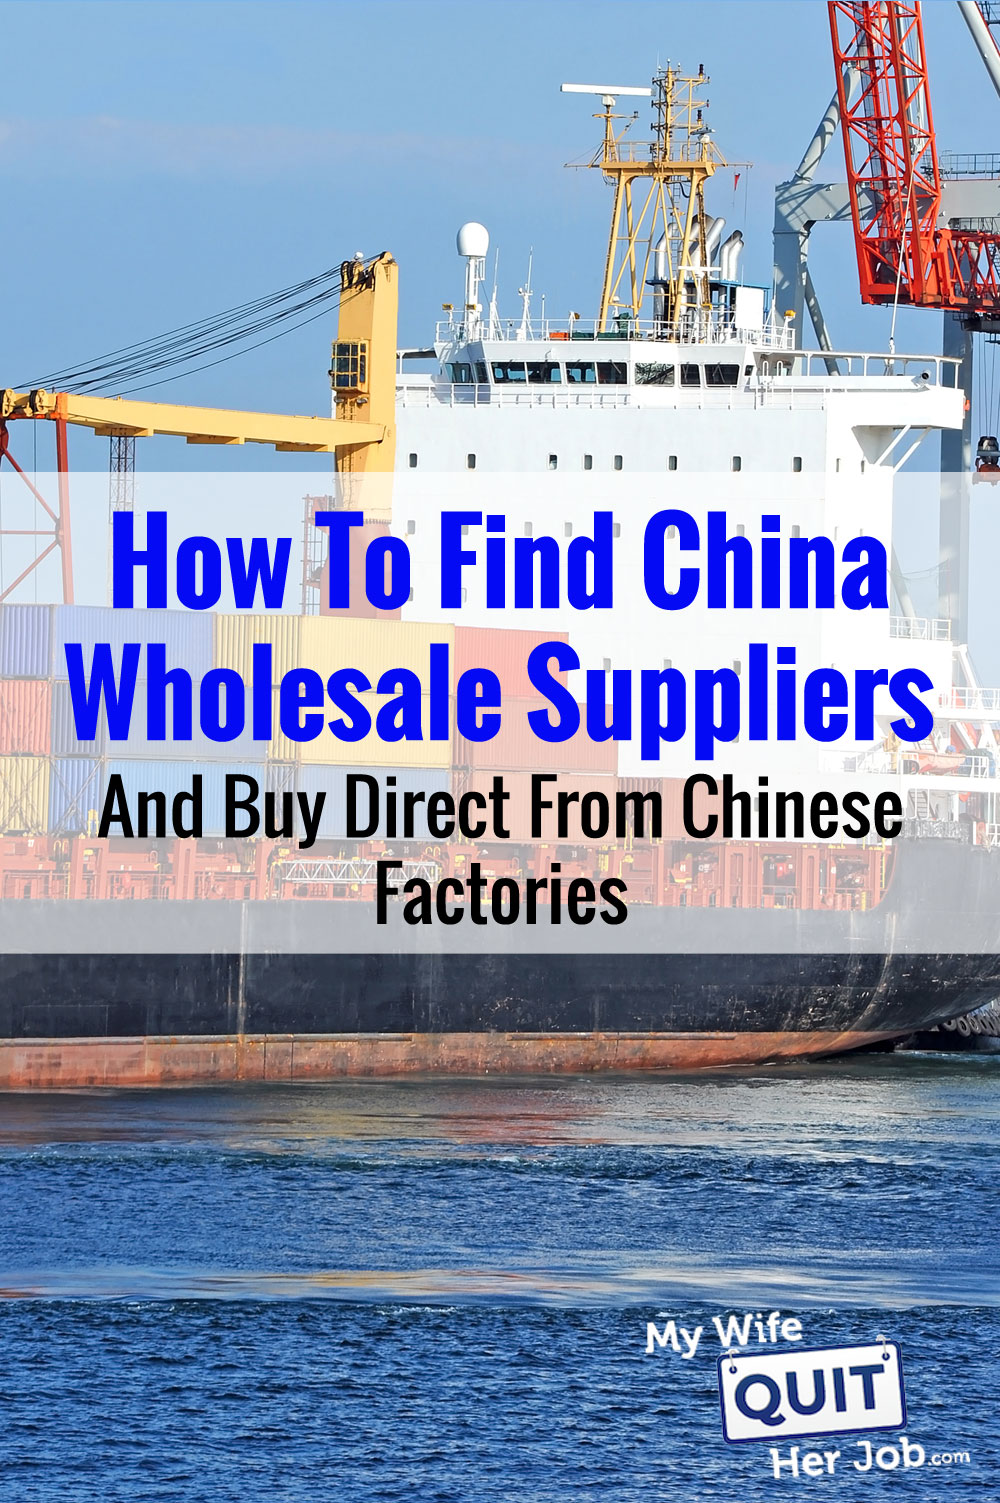 03a39e4413 How To Find China Wholesale Suppliers And Import Direct From Chinese  Factories